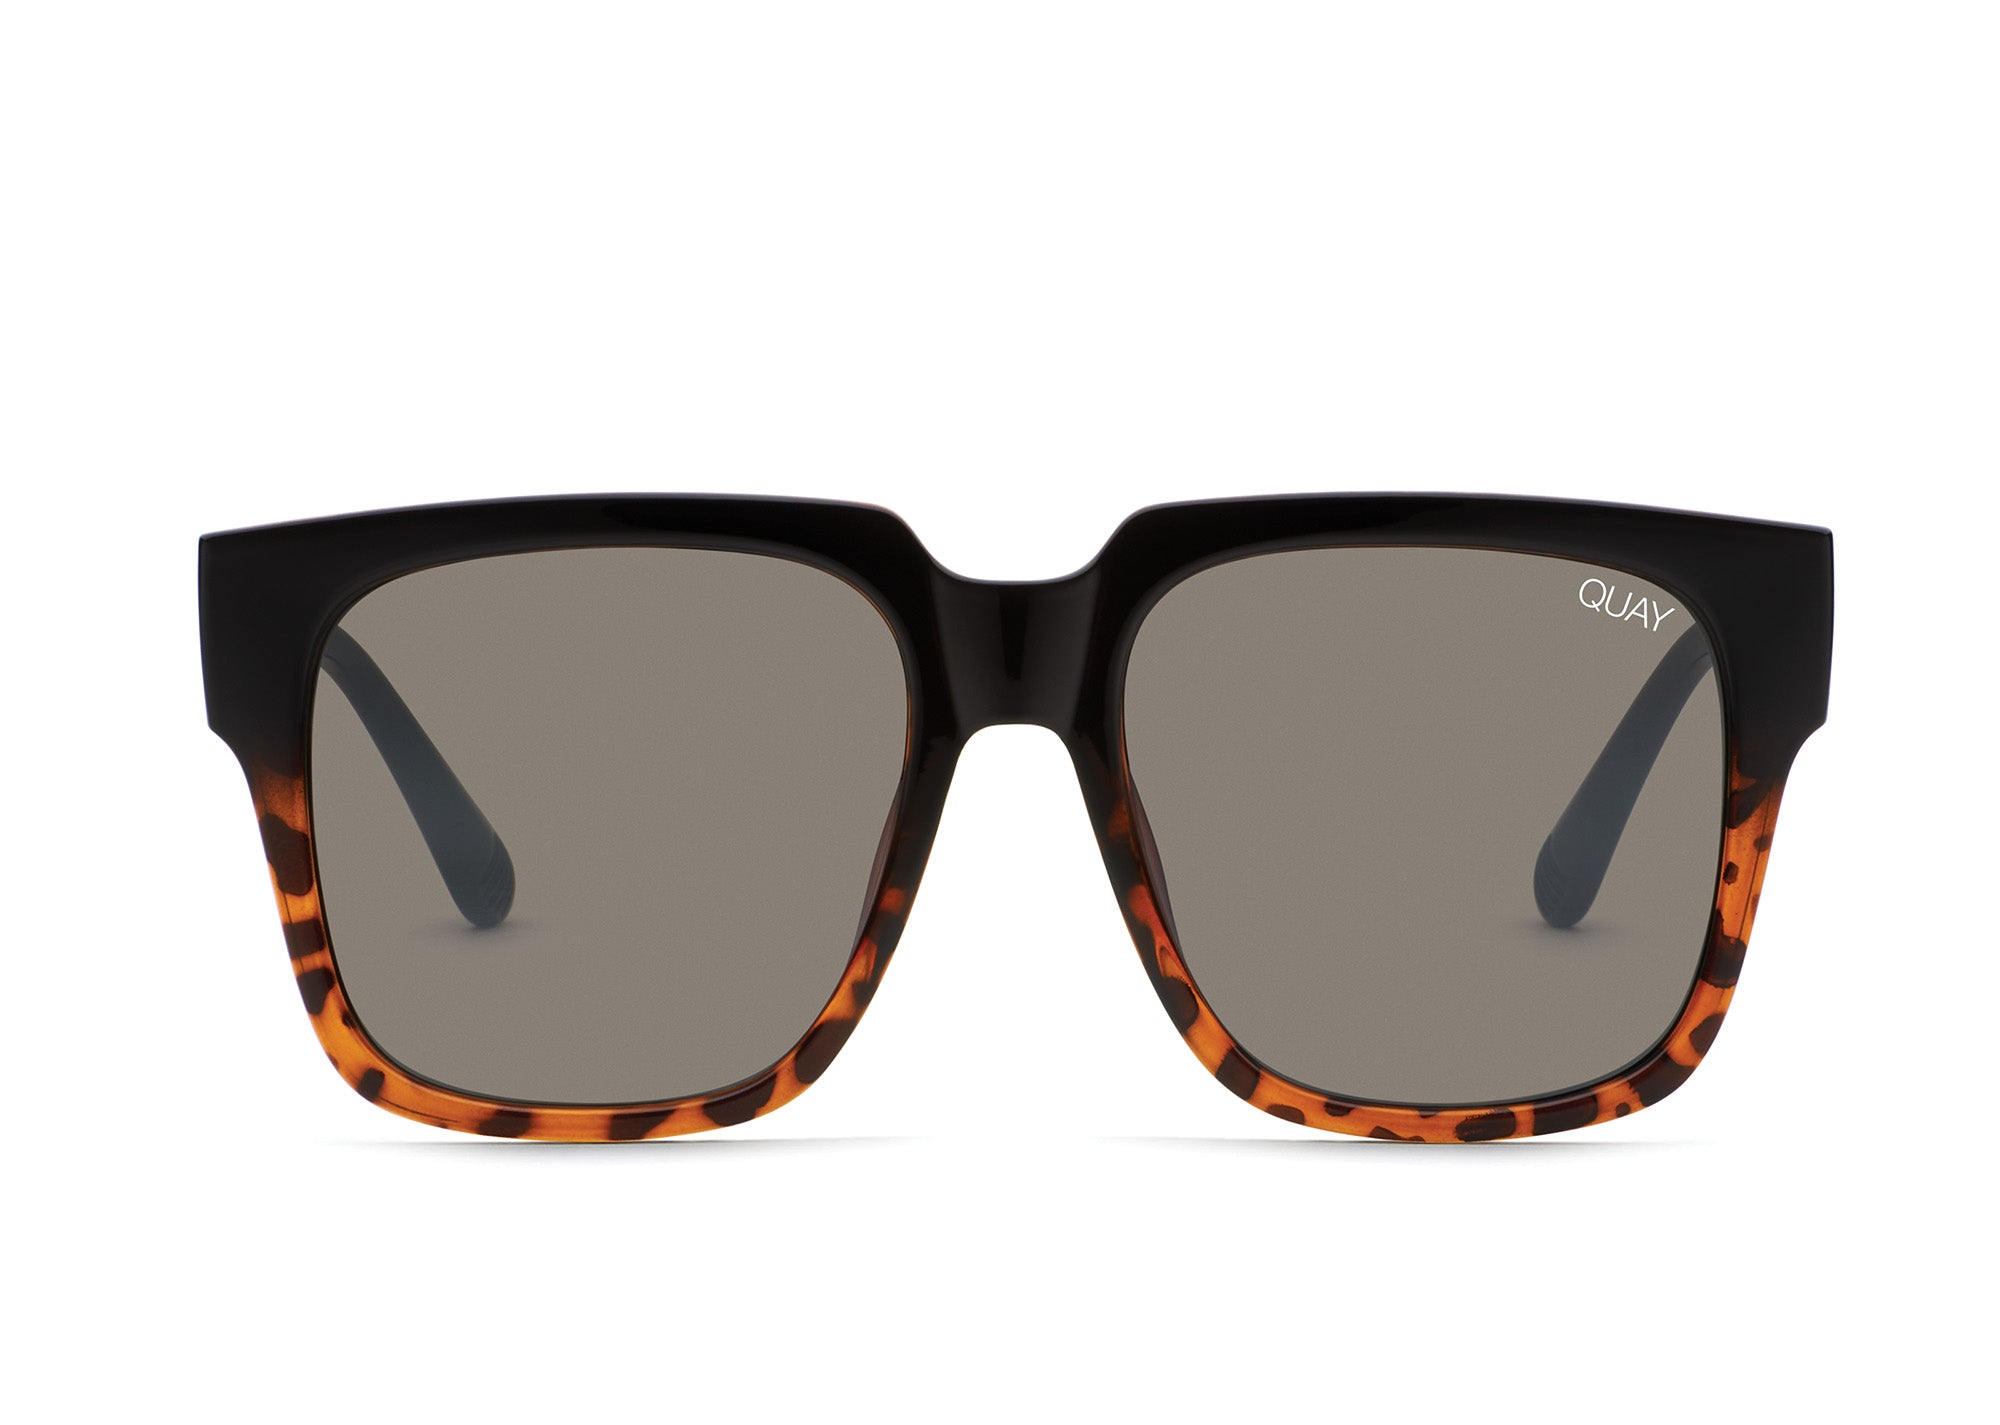 Load image into Gallery viewer, Quay Australia - On The Prowl Tortoise/Smoke Sunglasses